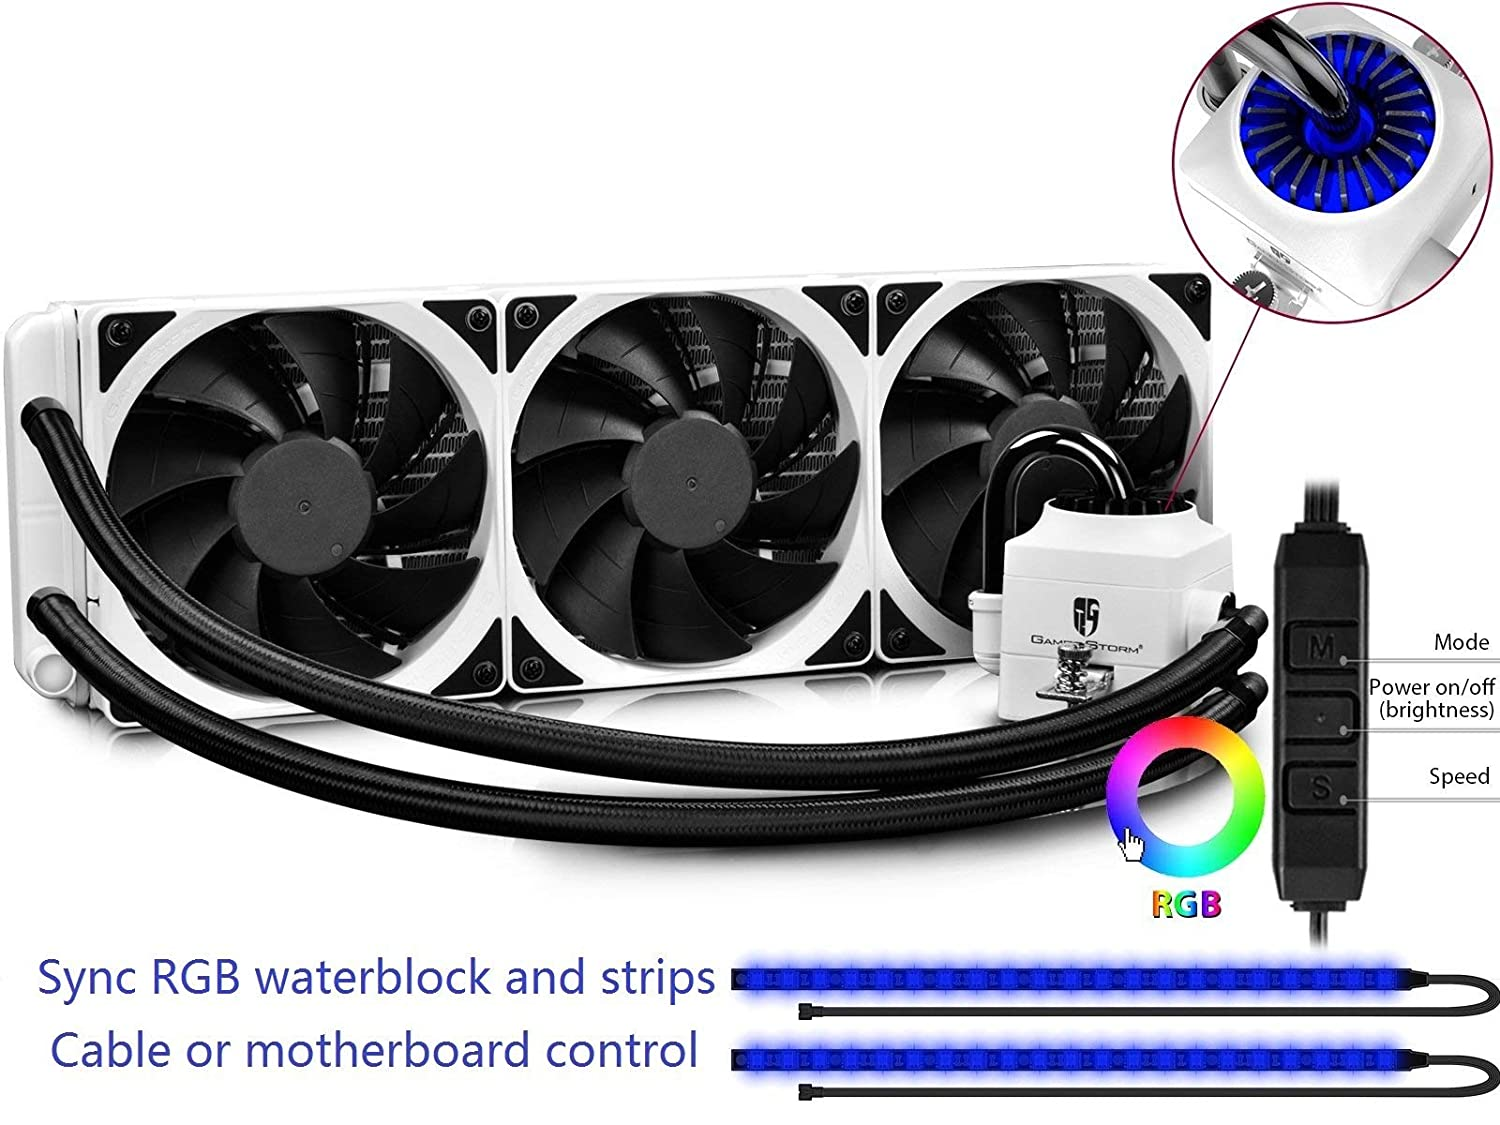 DEEPCOOL Captain 360EX RGB White, AIO Liquid CPU Cooler, Synchronous RGB Waterblock and 2 LED Strips Controlled by Cable Controller or Motherboard, 3×120mm PWM Fans, AM4 Compatible, 3-Year Warranty